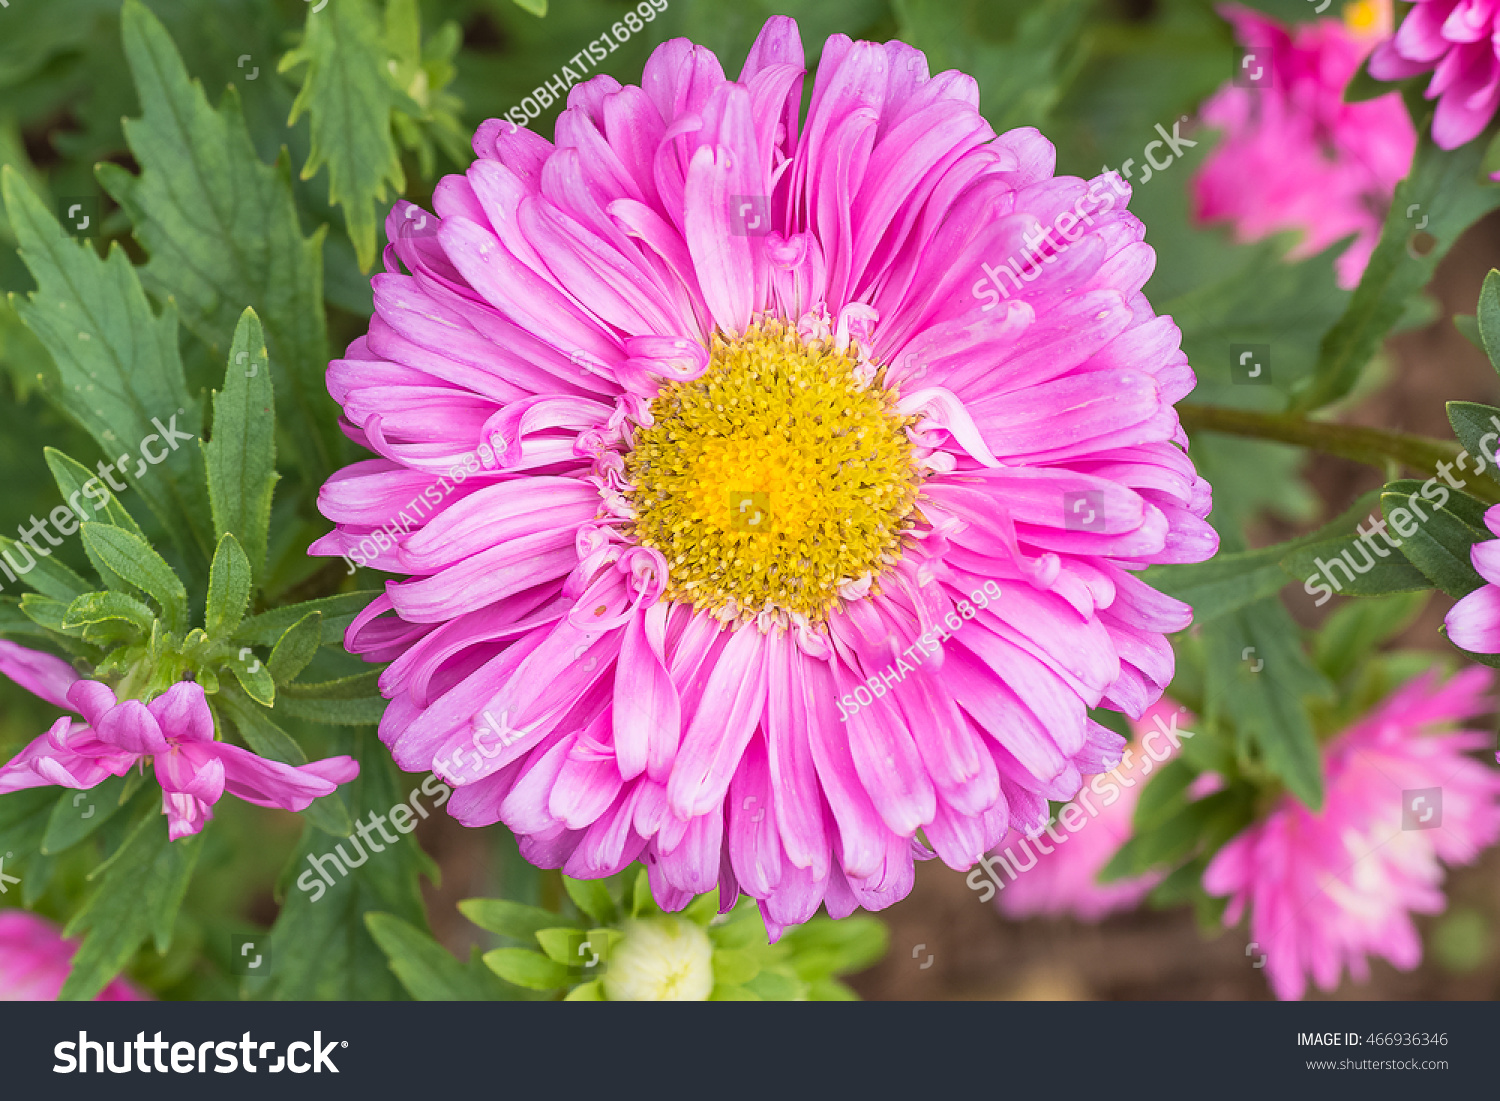 Aster flower one flowering plant daisy stock photo royalty free the aster flower in one of flowering plant in daisy familyusing for garden or izmirmasajfo Choice Image